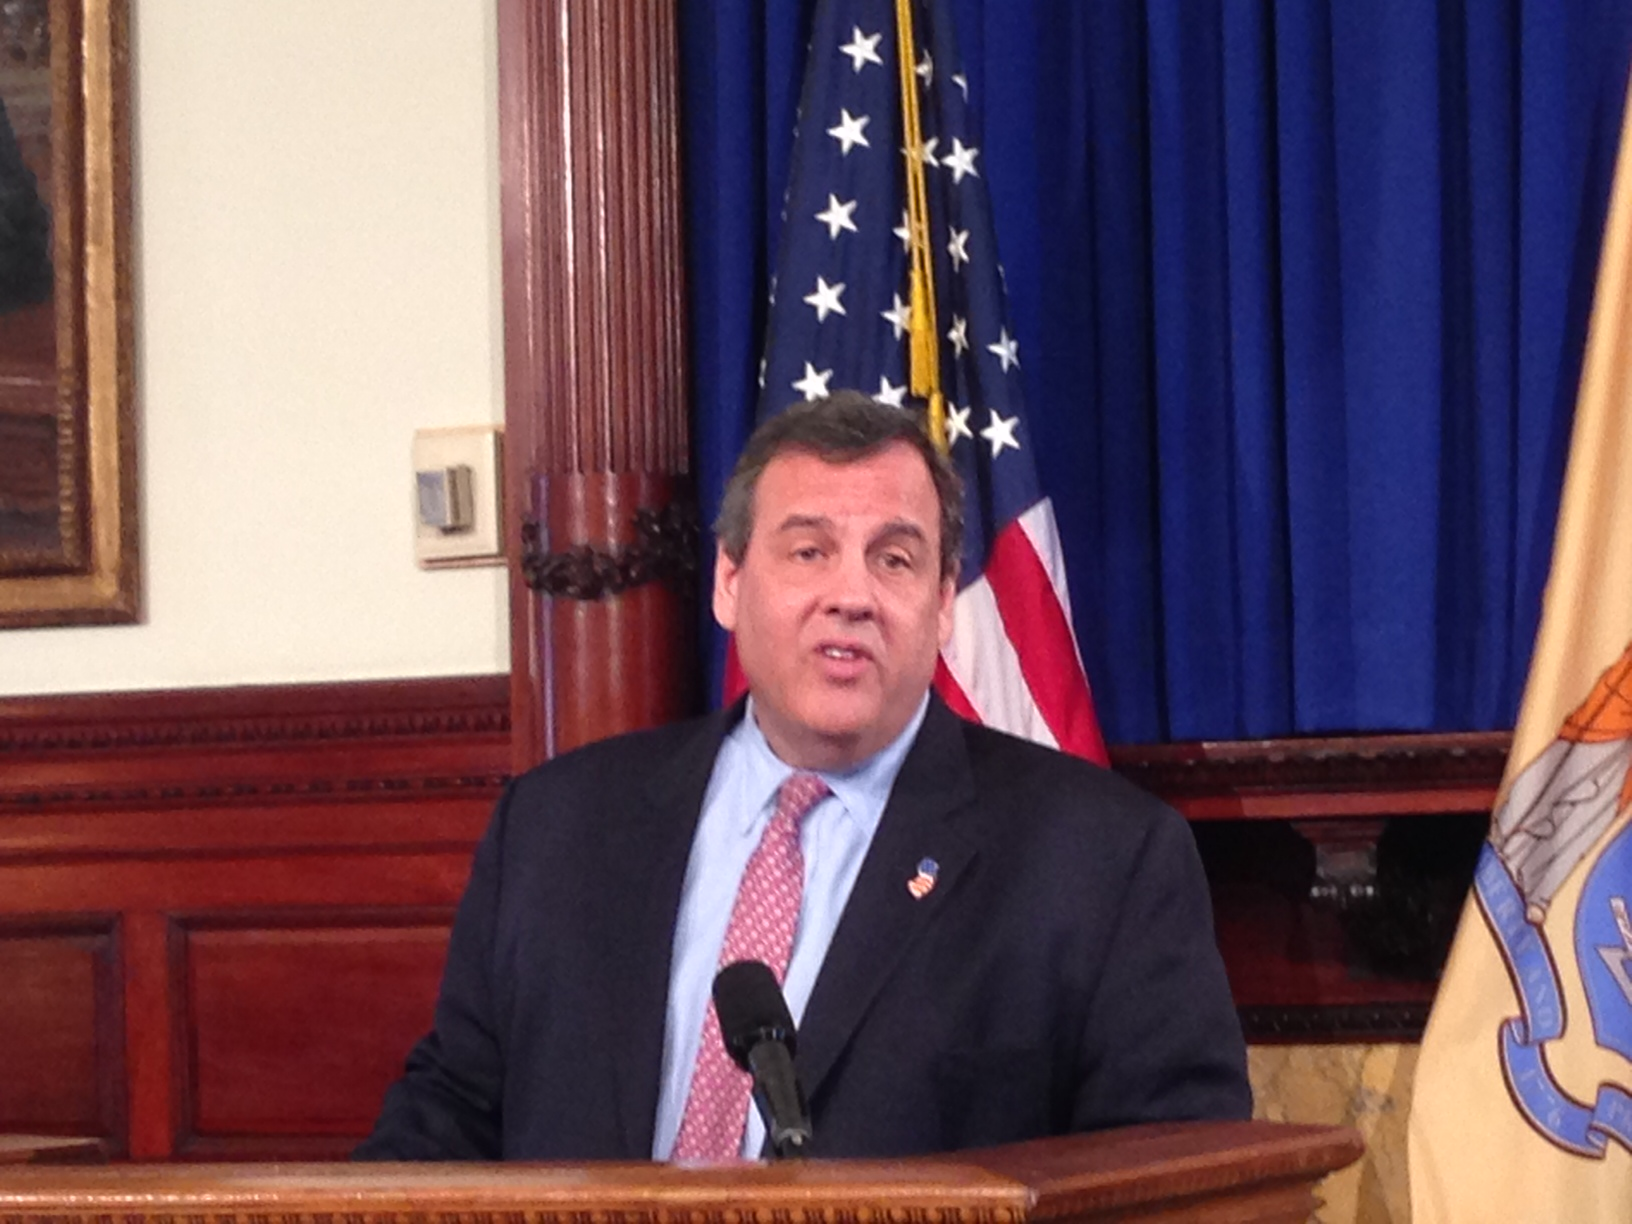 Christie at the State House on March 3.